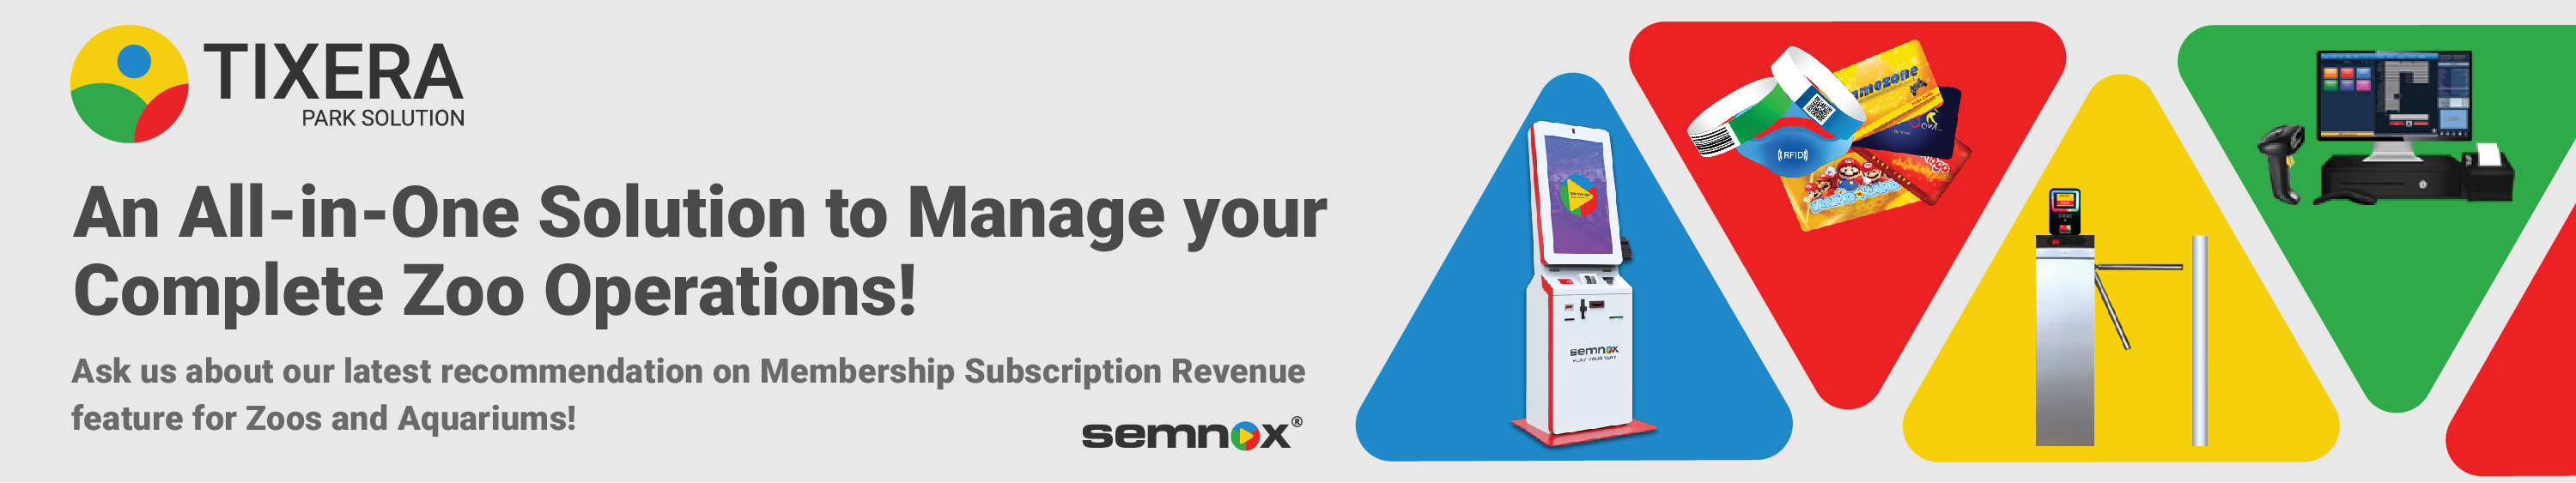 Semnox: An all-in-one solution to manage your complete zoo operations.